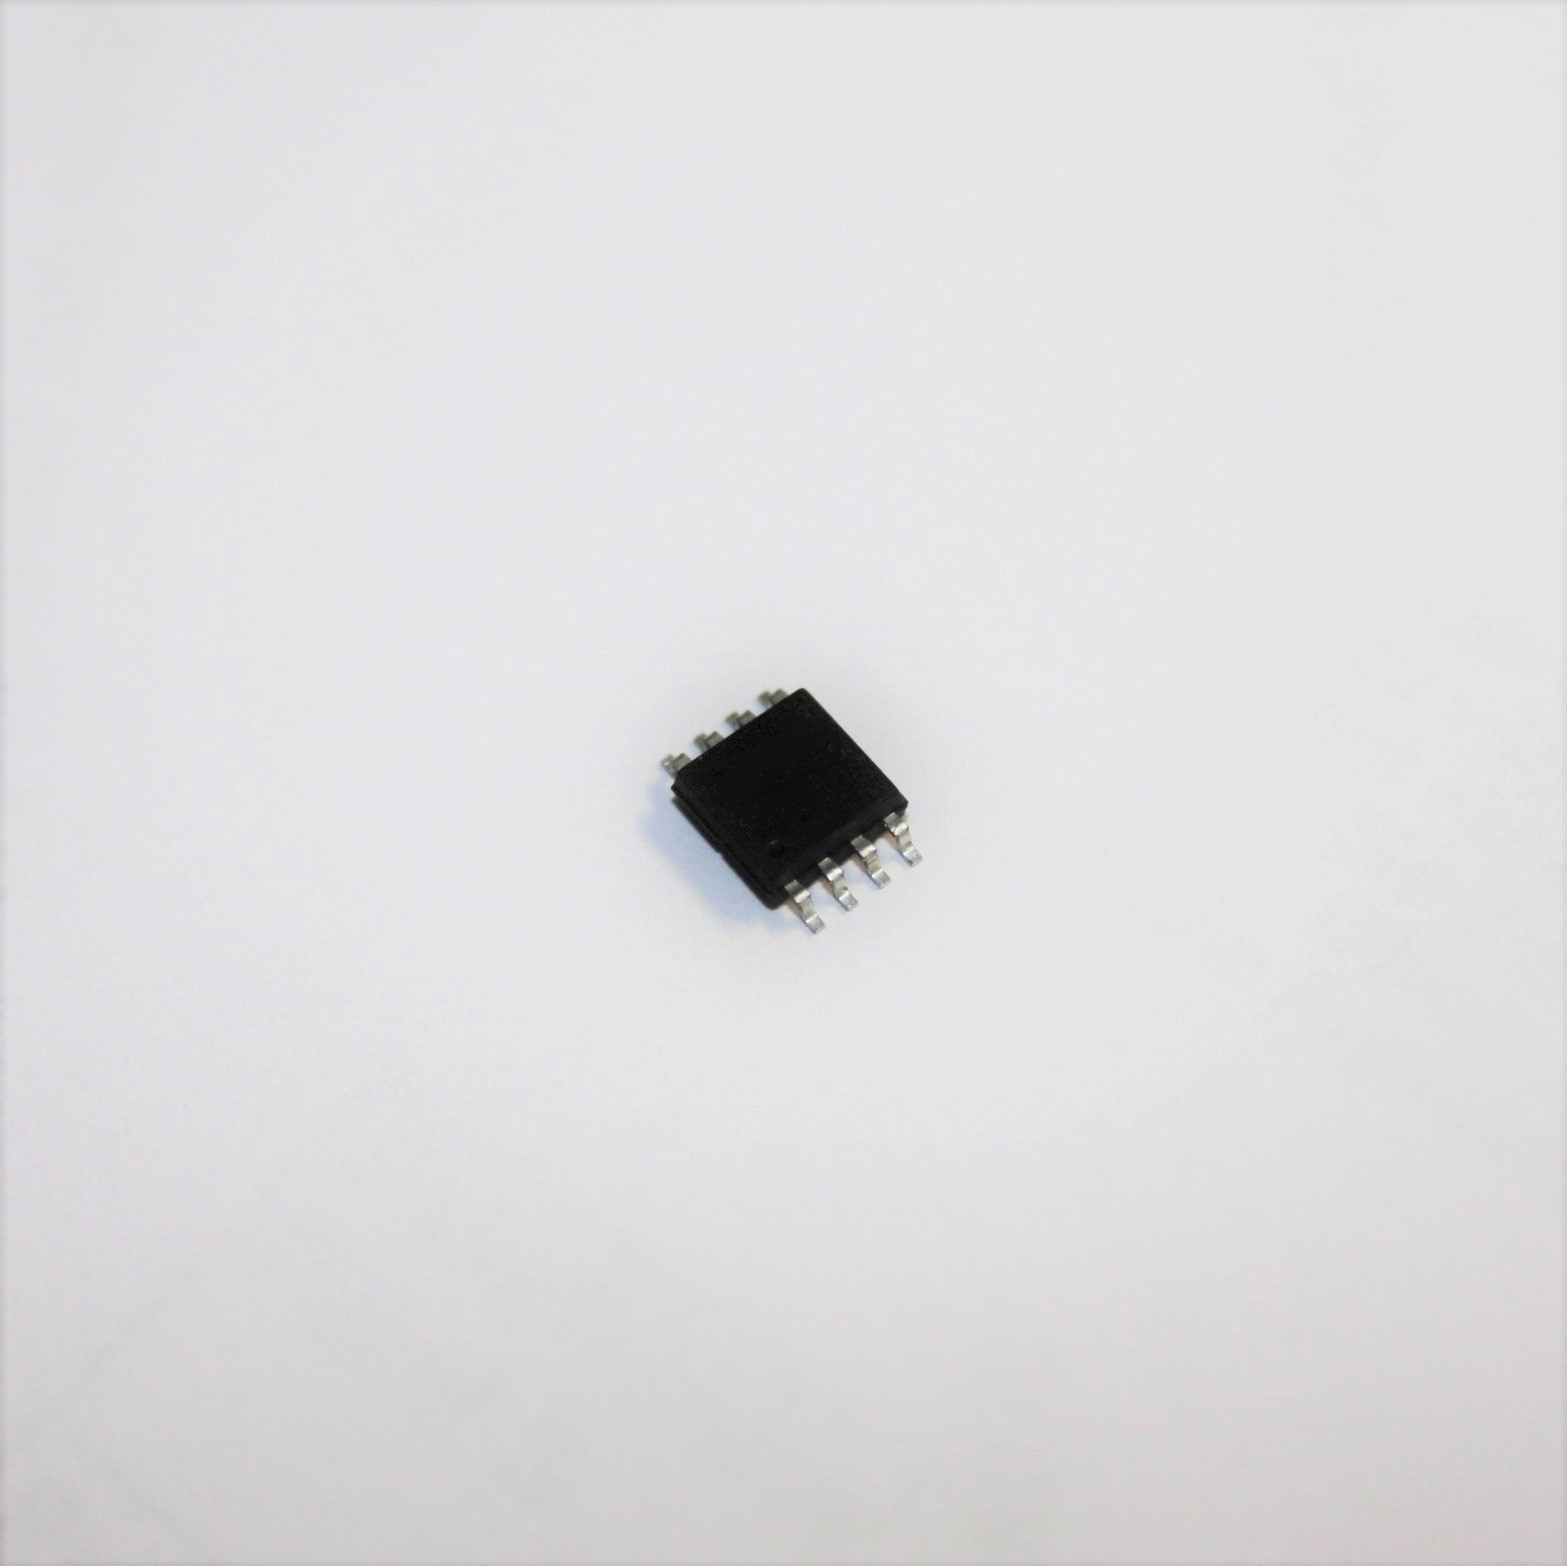 SST25VF032B 50-4C-S2AF, 32 Mbit SPI Serial Flash, SOIC-8